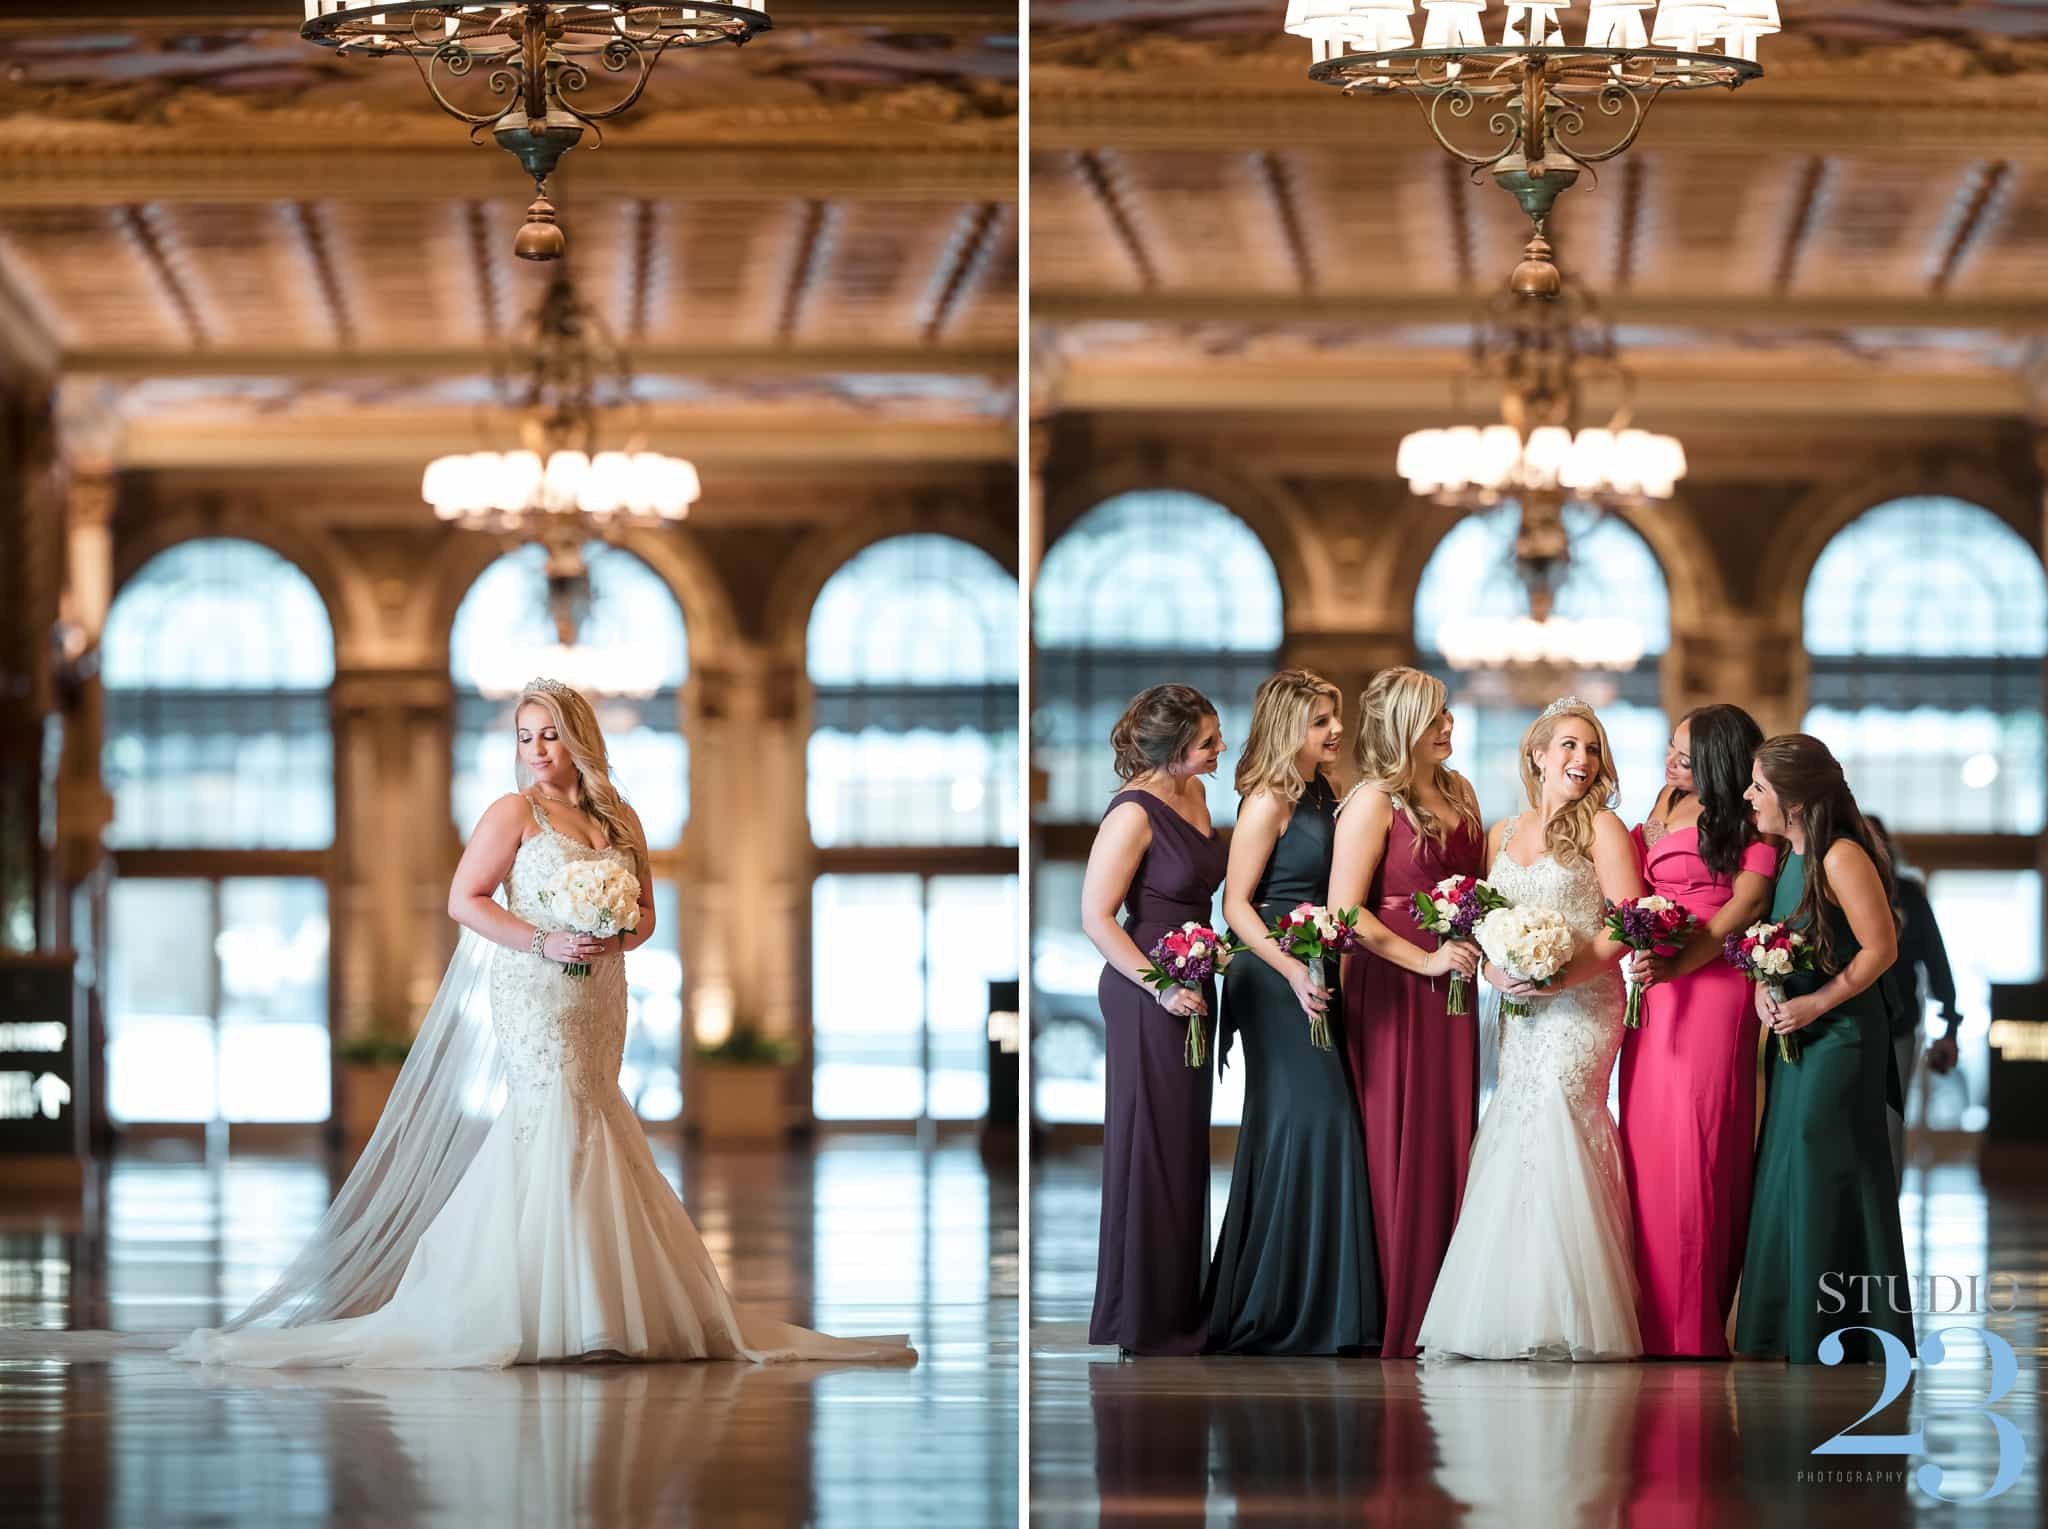 Glamorous Crystal Ballroom Wedding at Millennium Biltmore Los Angeles | Los Angeles Wedding Photographers